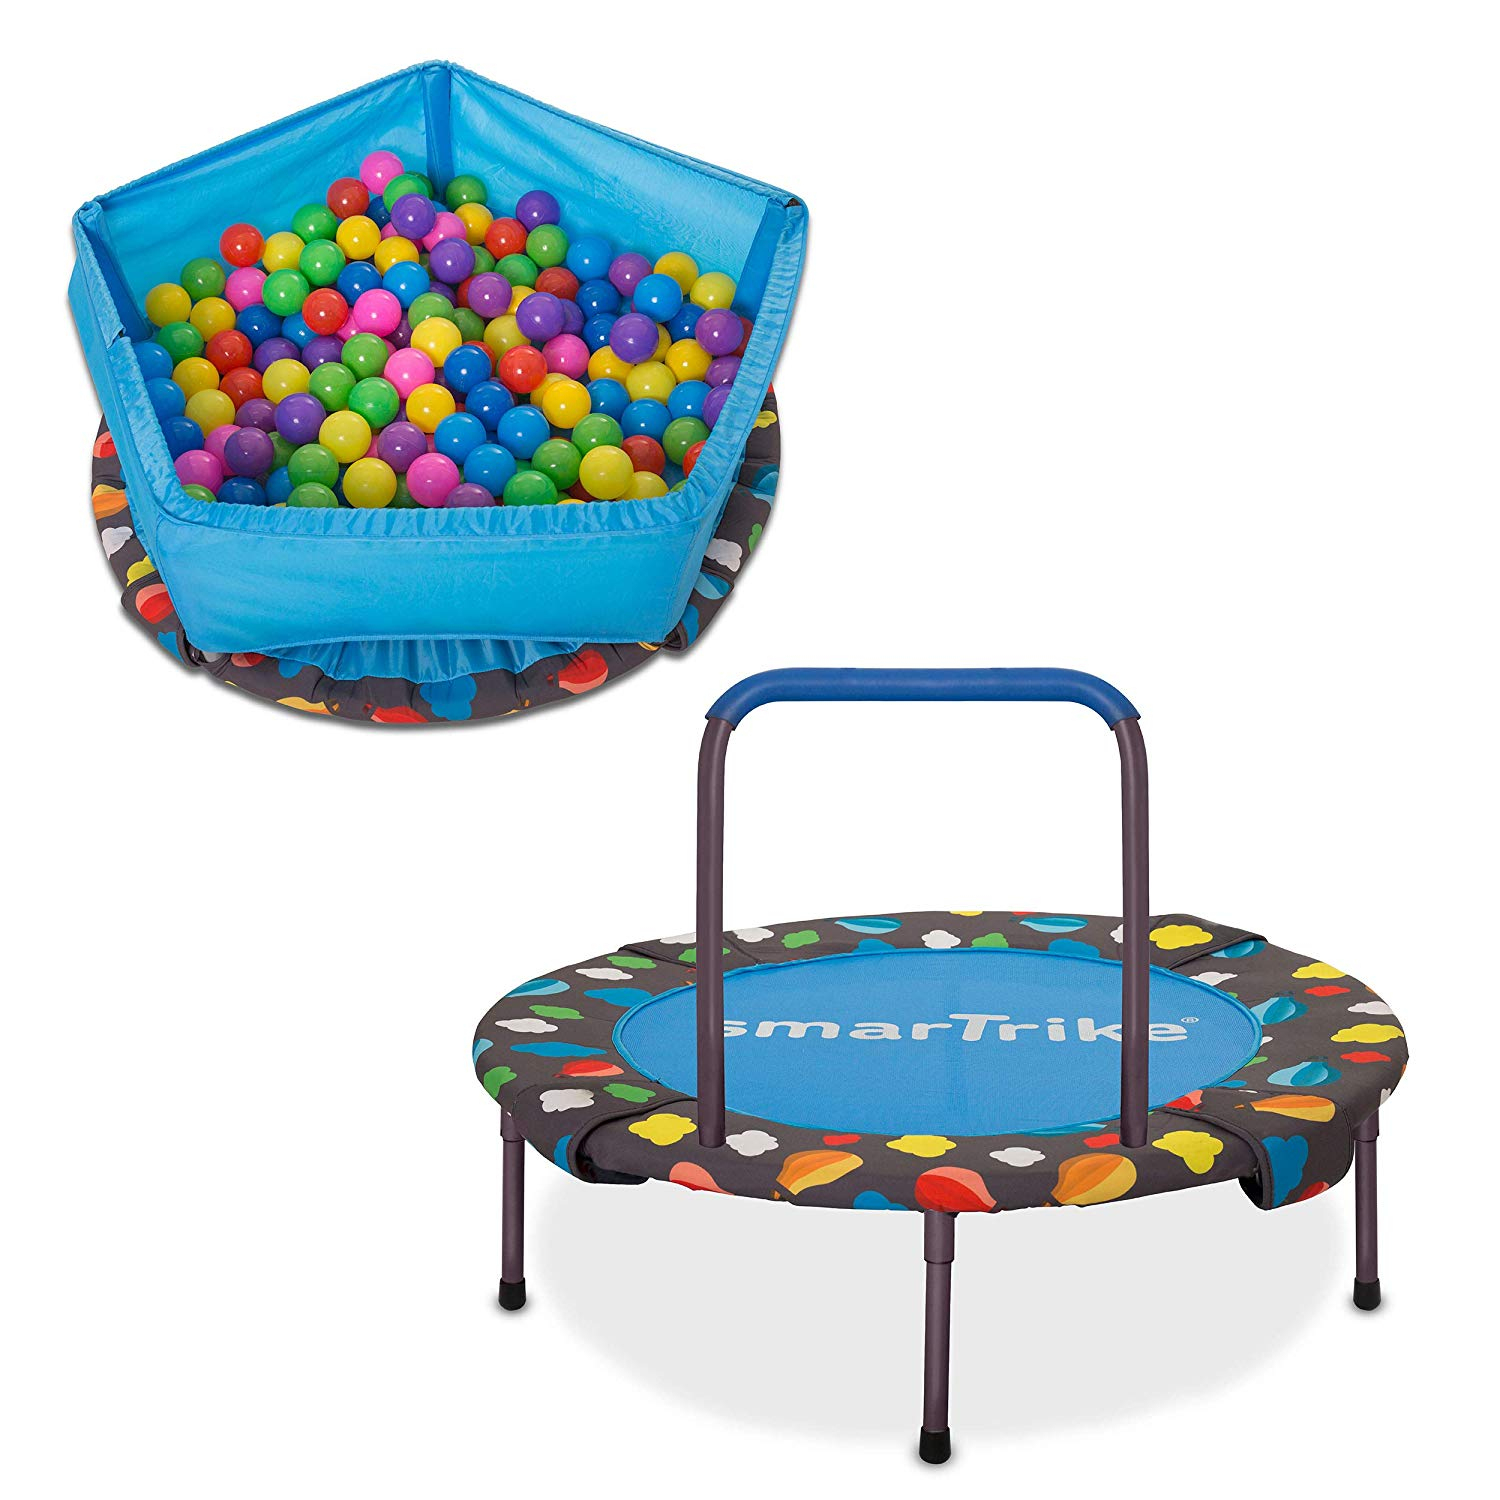 Buy Smartrike Indoor Toddler Trampoline With Handle, Ball Pit - 100 Balls  Included For Cad 129.99 | Toys R Us Canada tout Piscine A Balle Toysrus